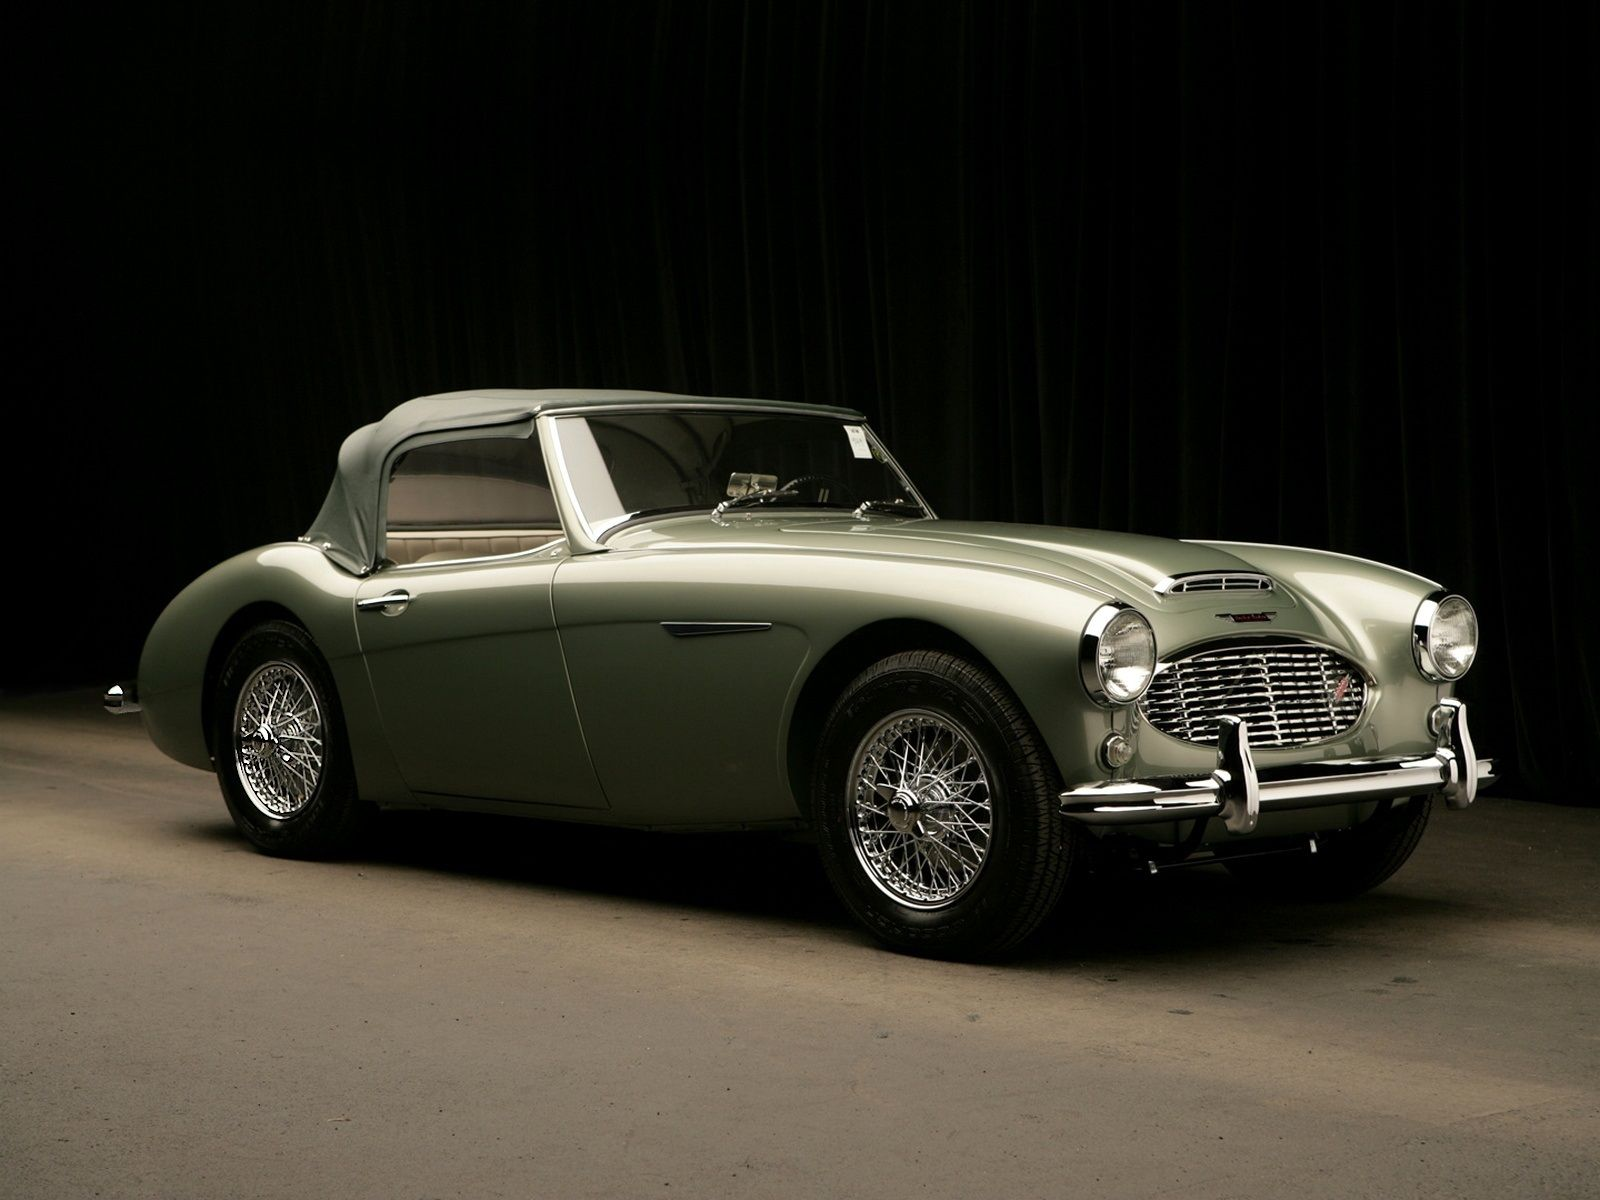 Austin Healey Sports Cars For Sale - We have a larger inventory of ...